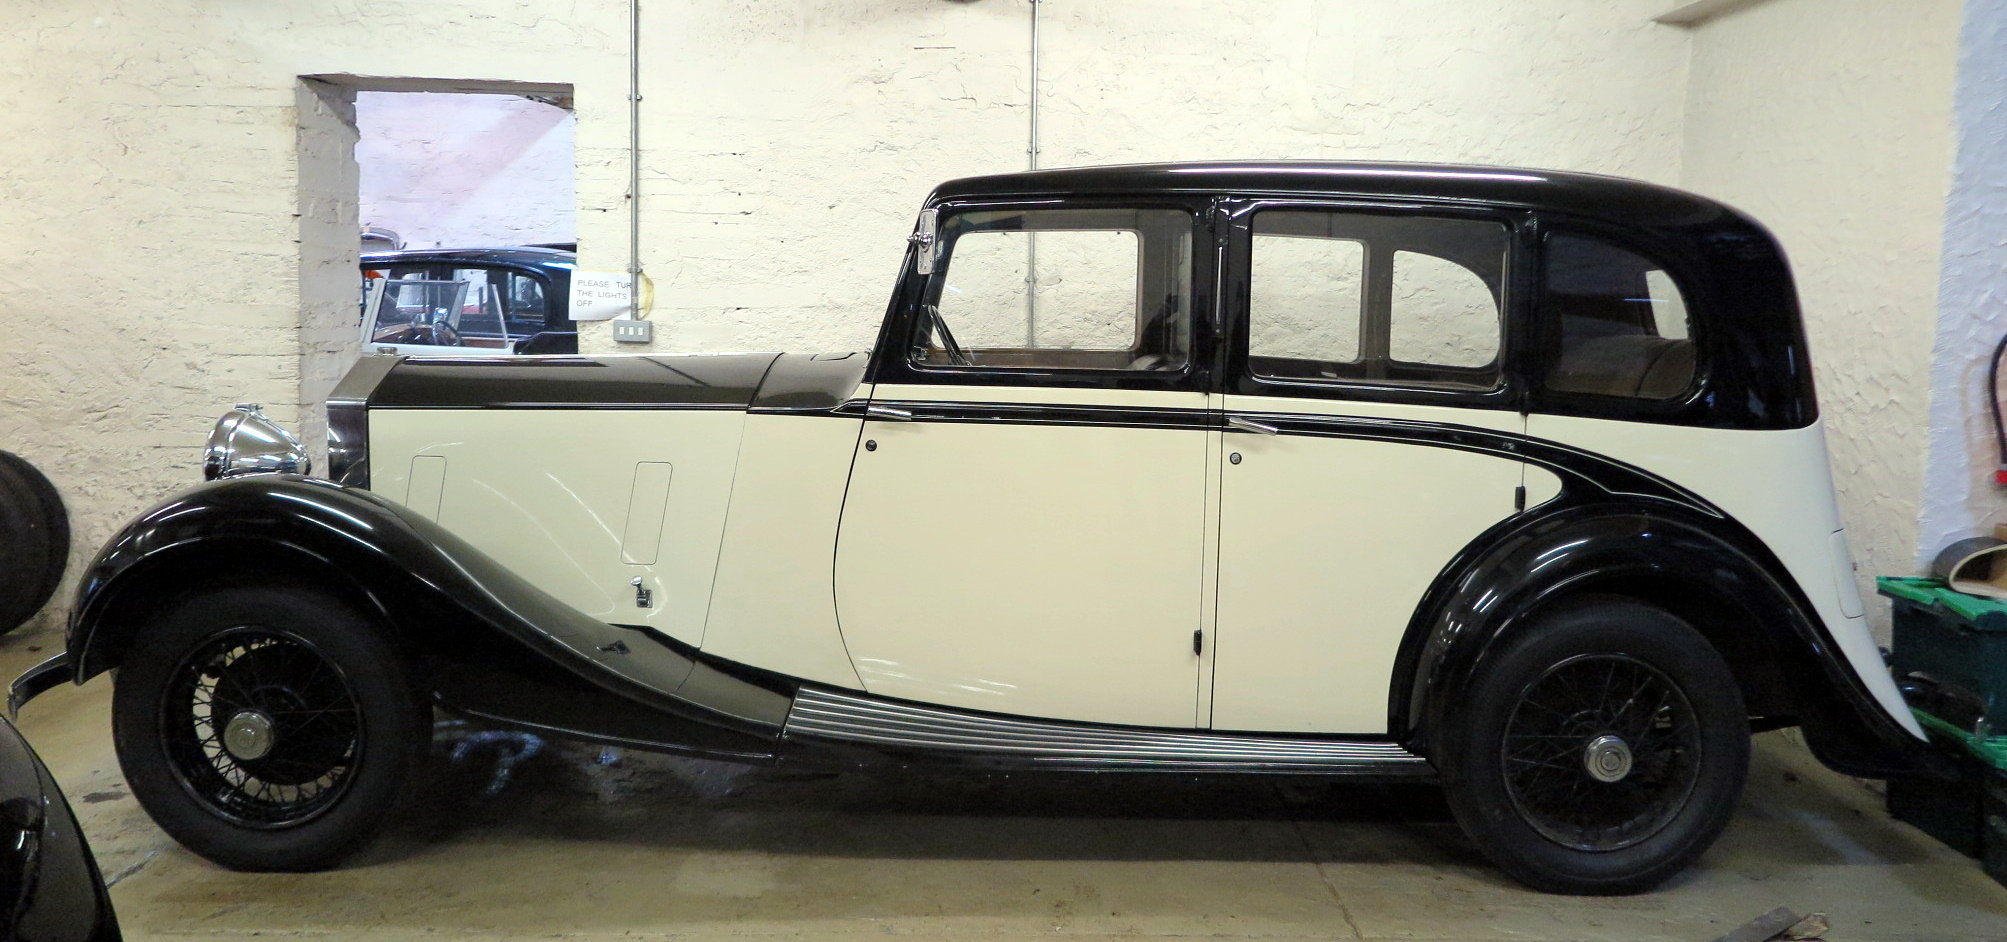 1938 Rolls-Royce 25/30 Park Ward Limousine Project GGR61 SOLD (picture 2 of 6)